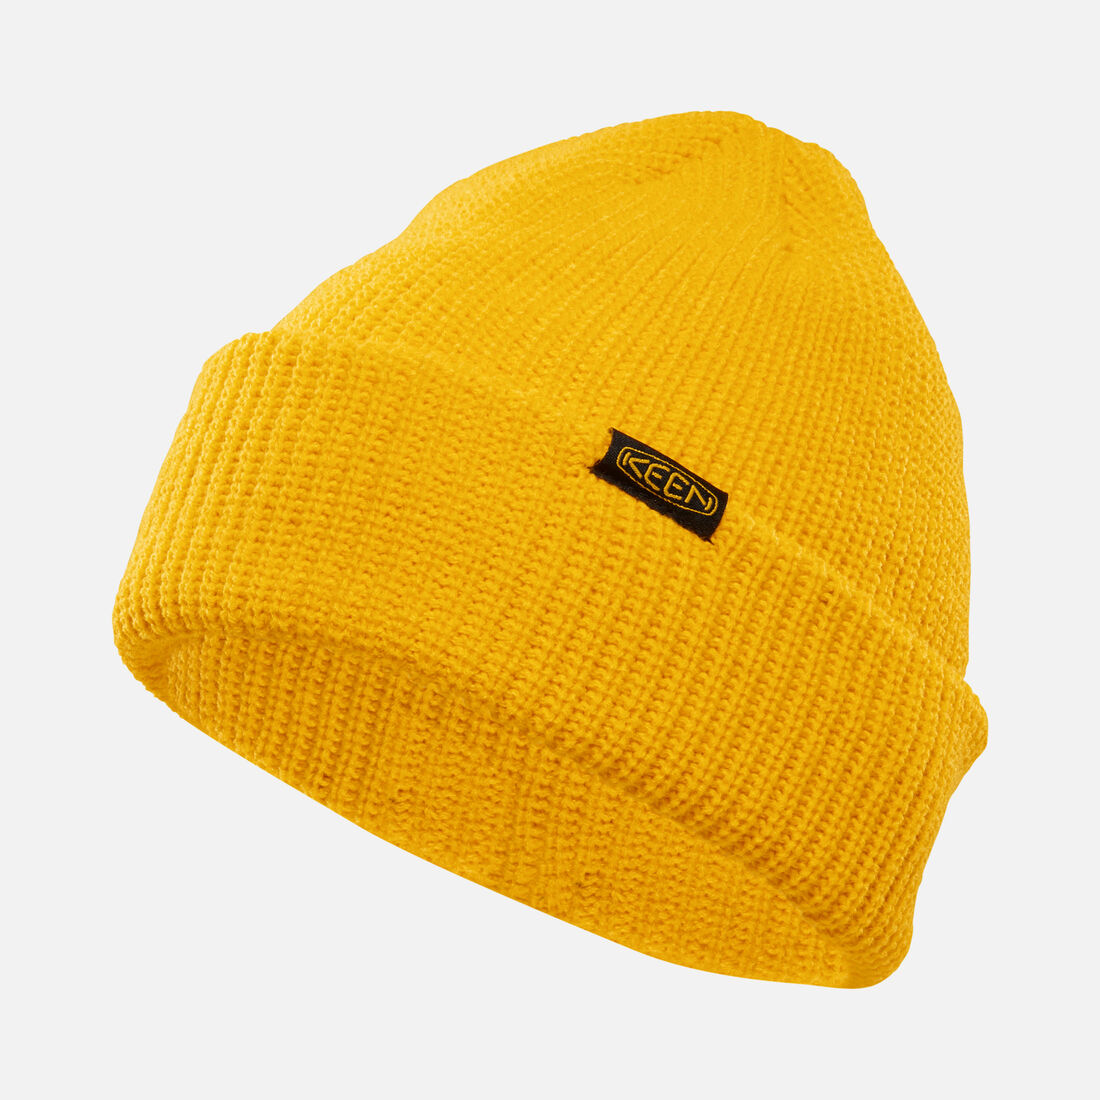 Hive Beanie in Yellow - large view.